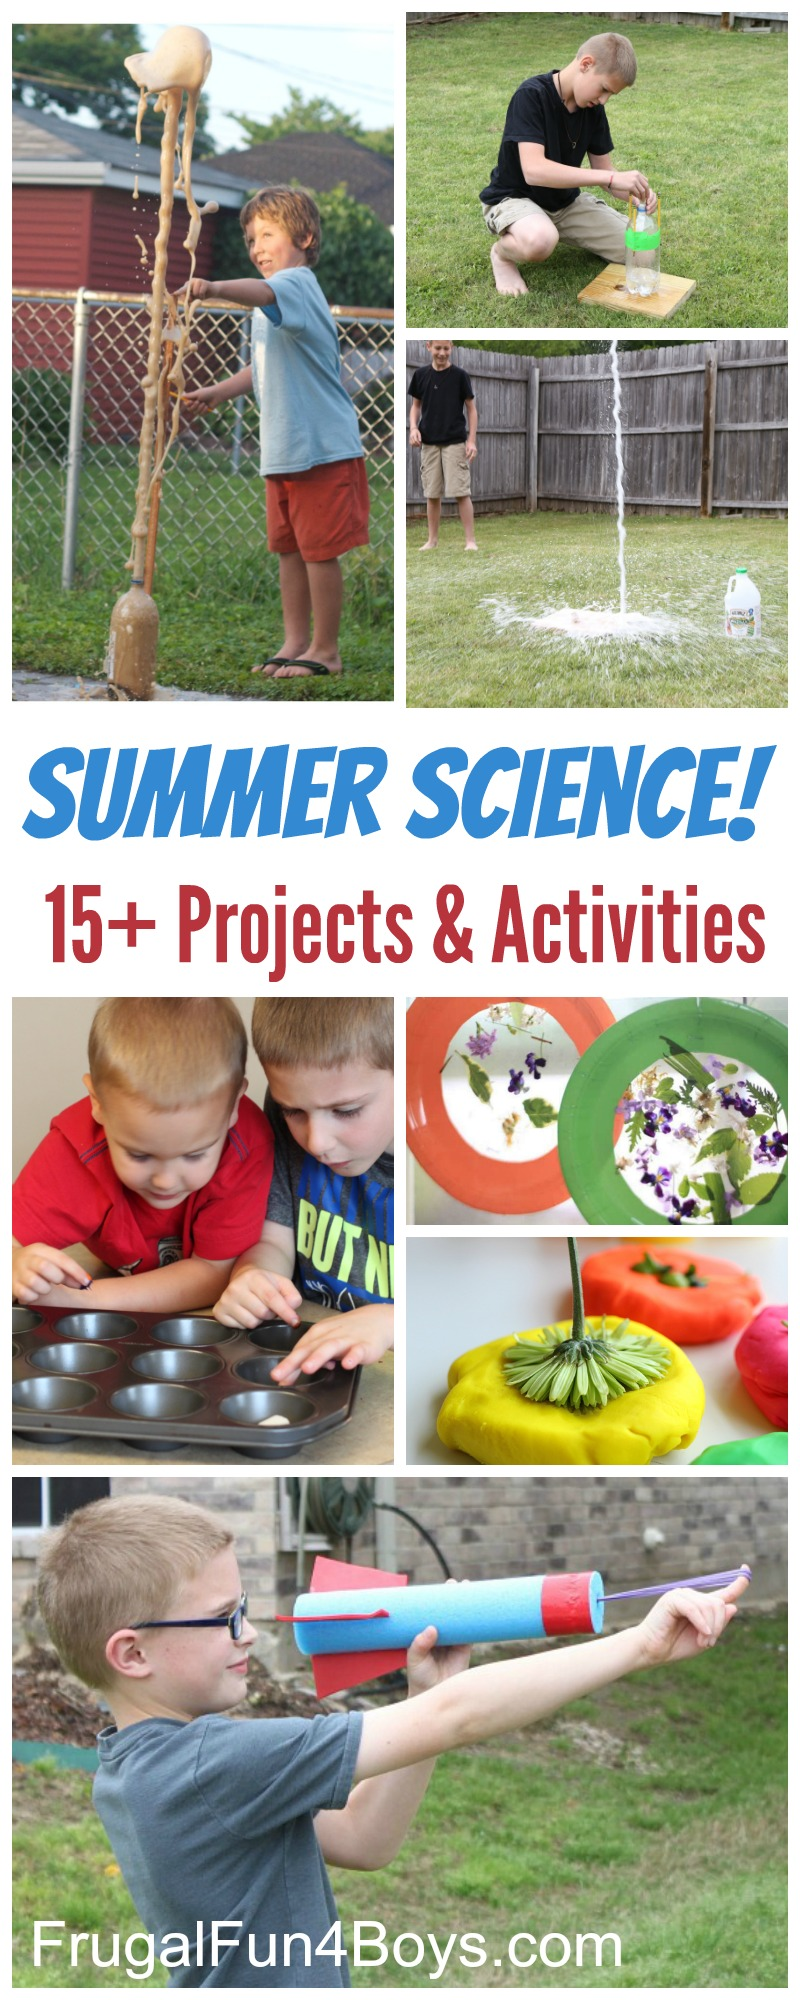 Summer Science for Kids! 15+ Projects , Experiments, and Activities